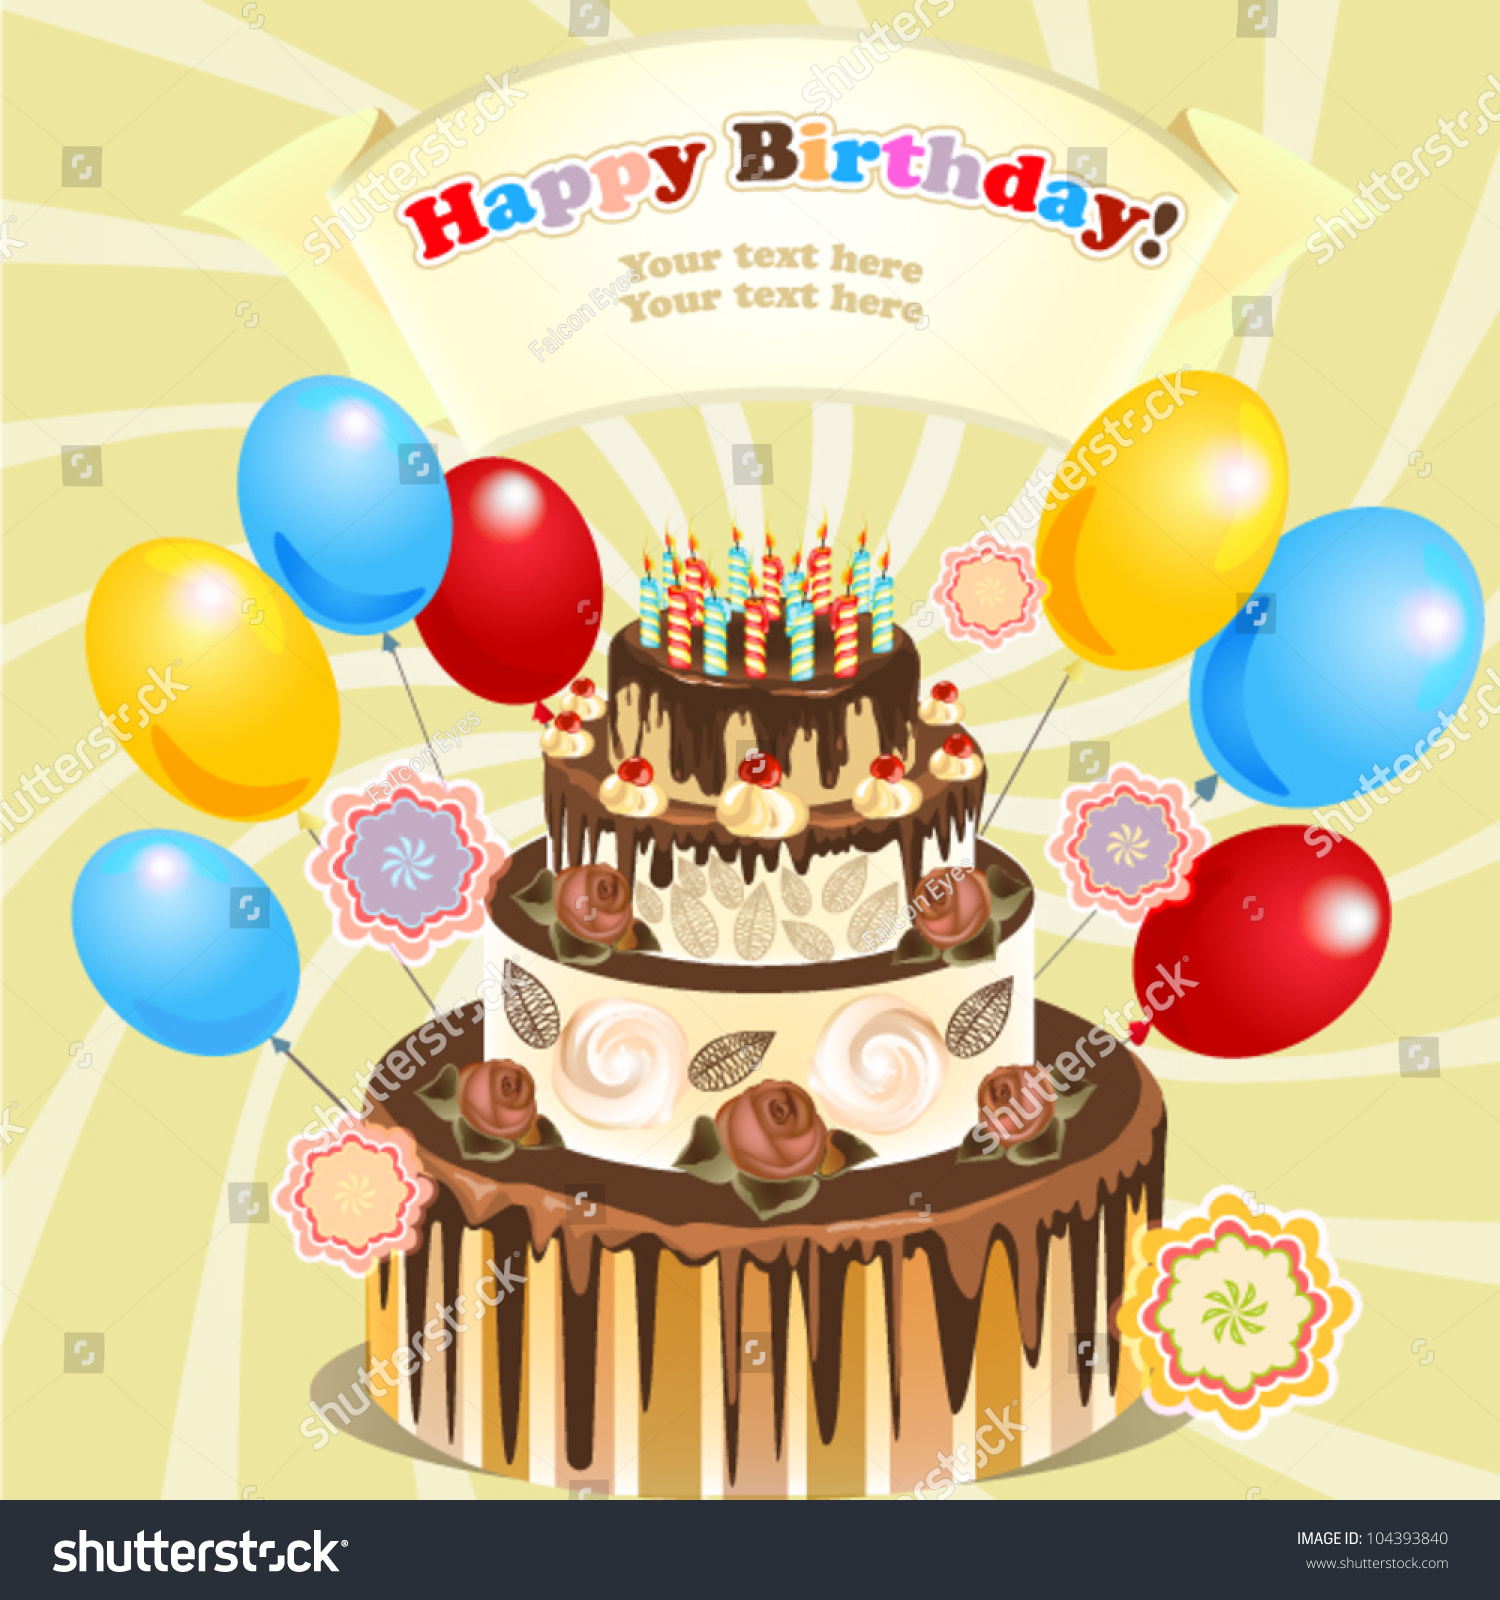 Big Cake With Candles And Balloons Original Birthday Greeting